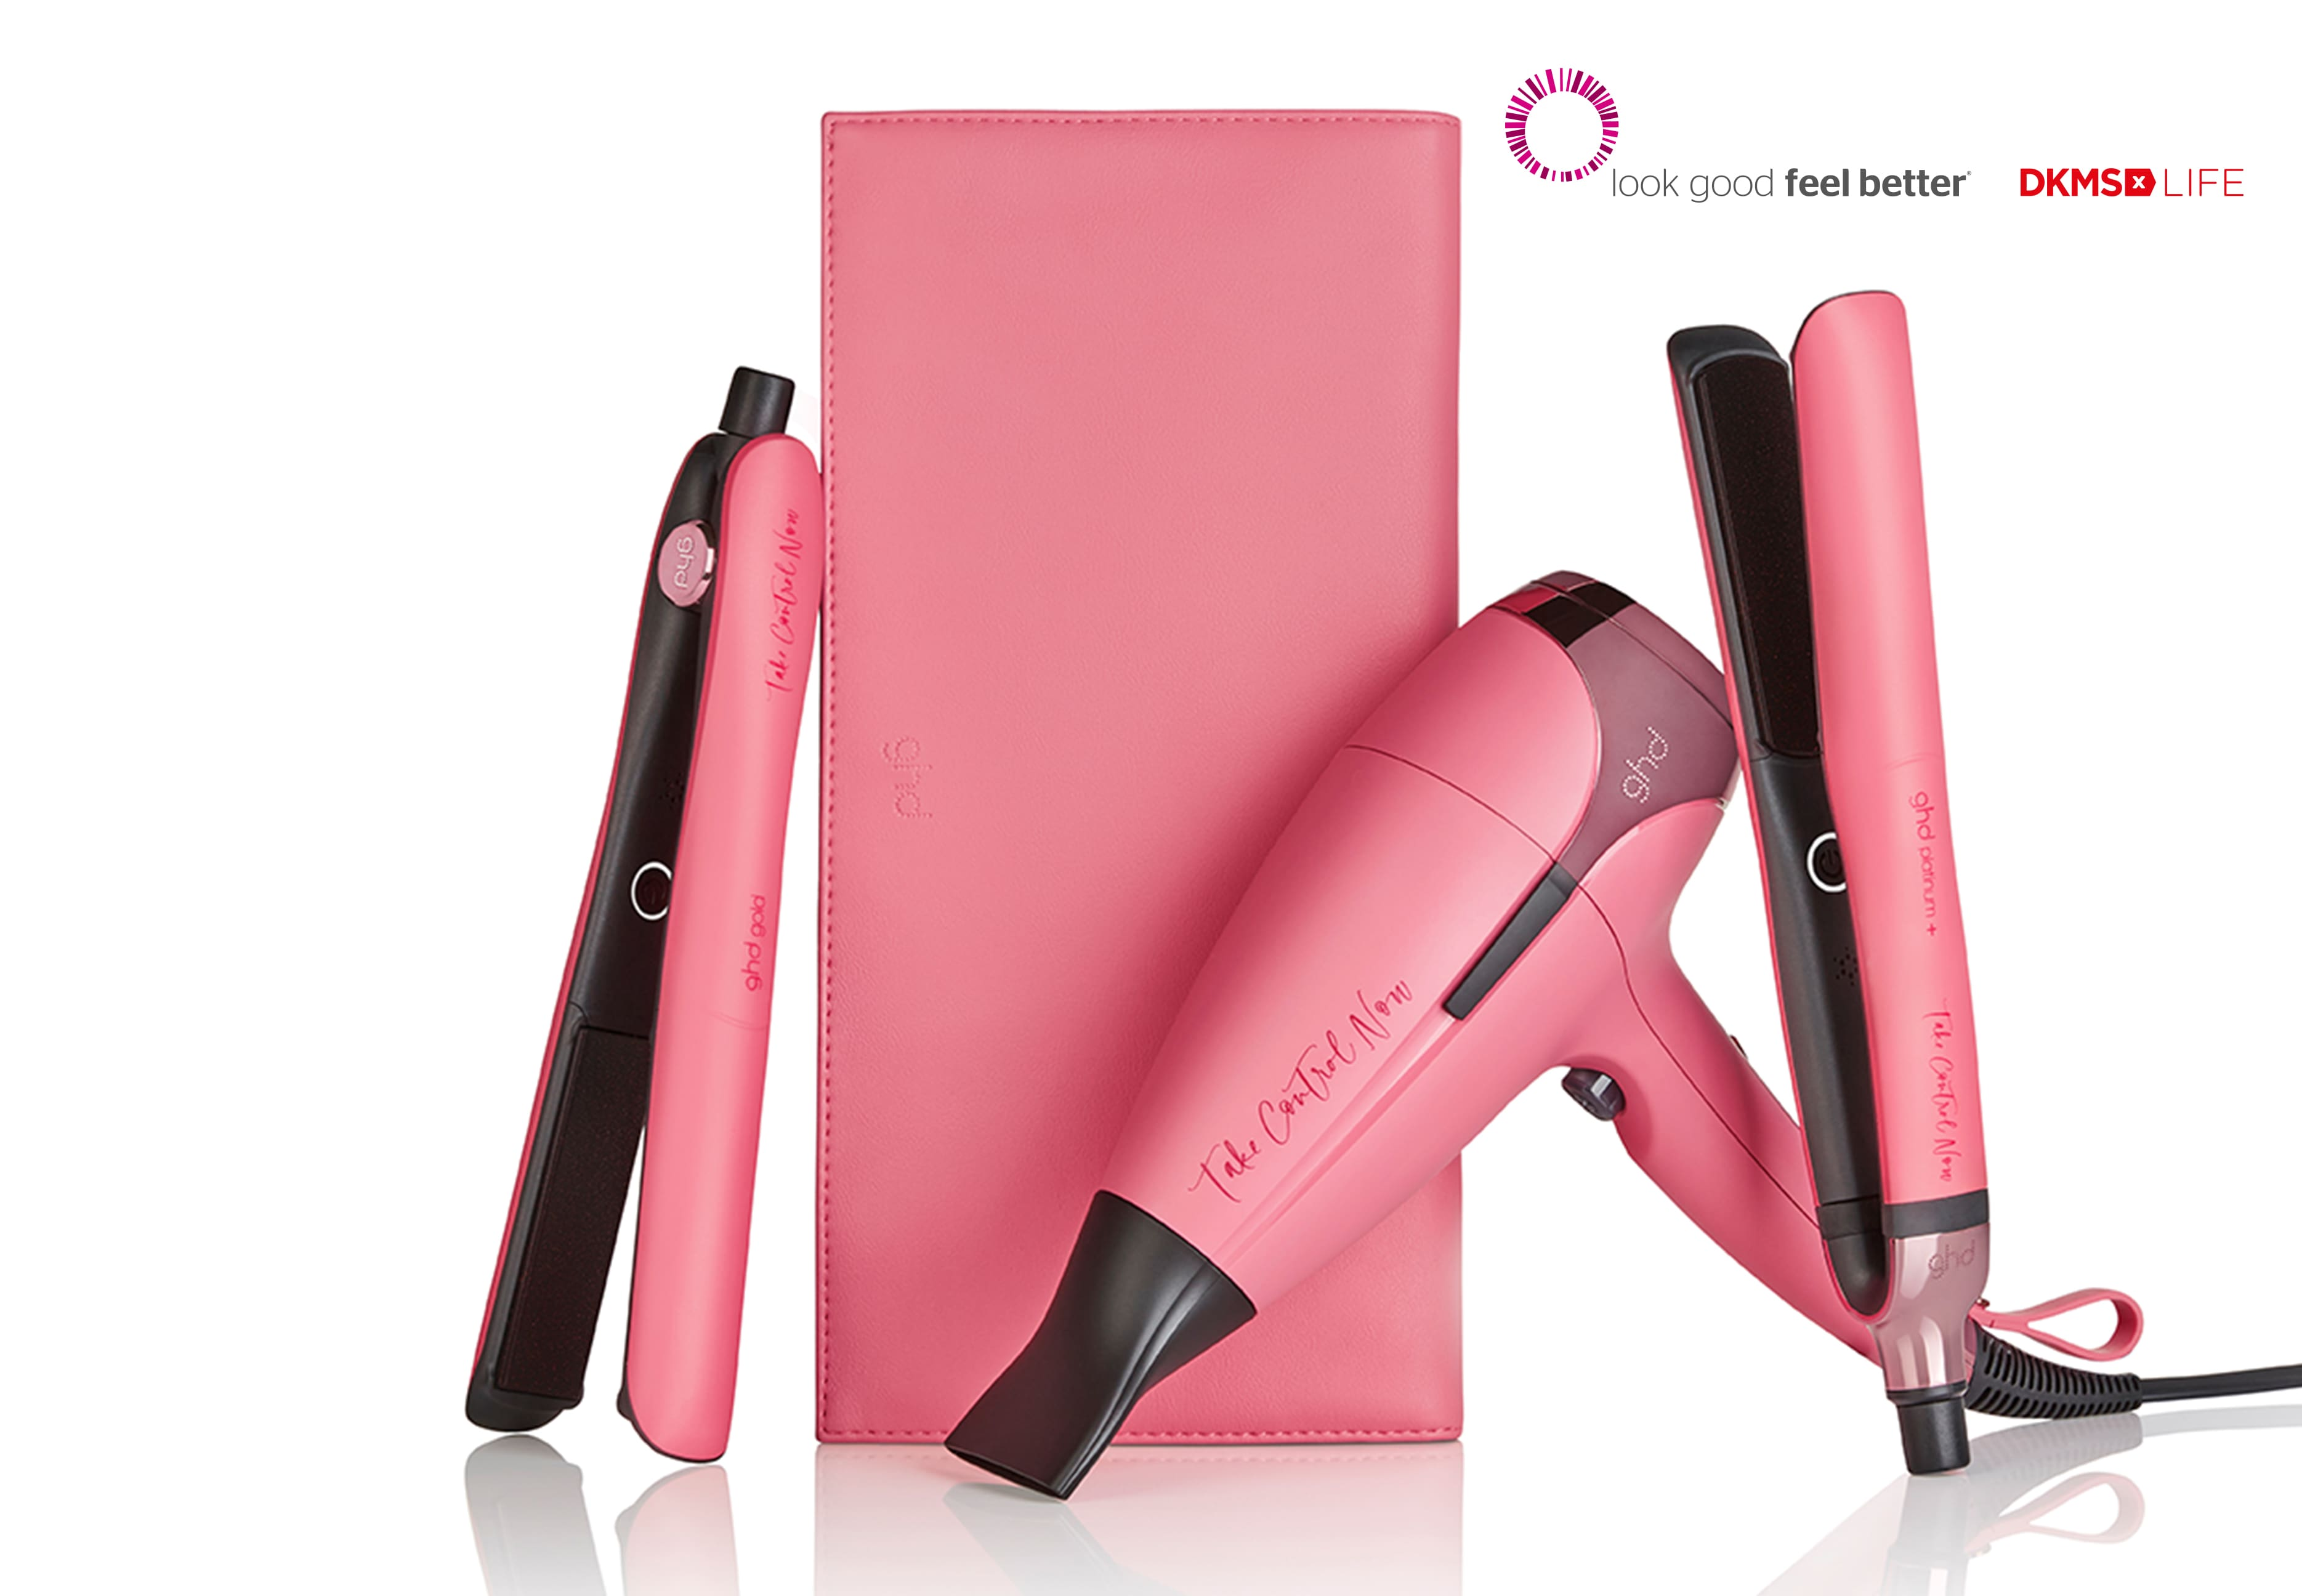 pinkes ghd Haarstylingtool Sortiment